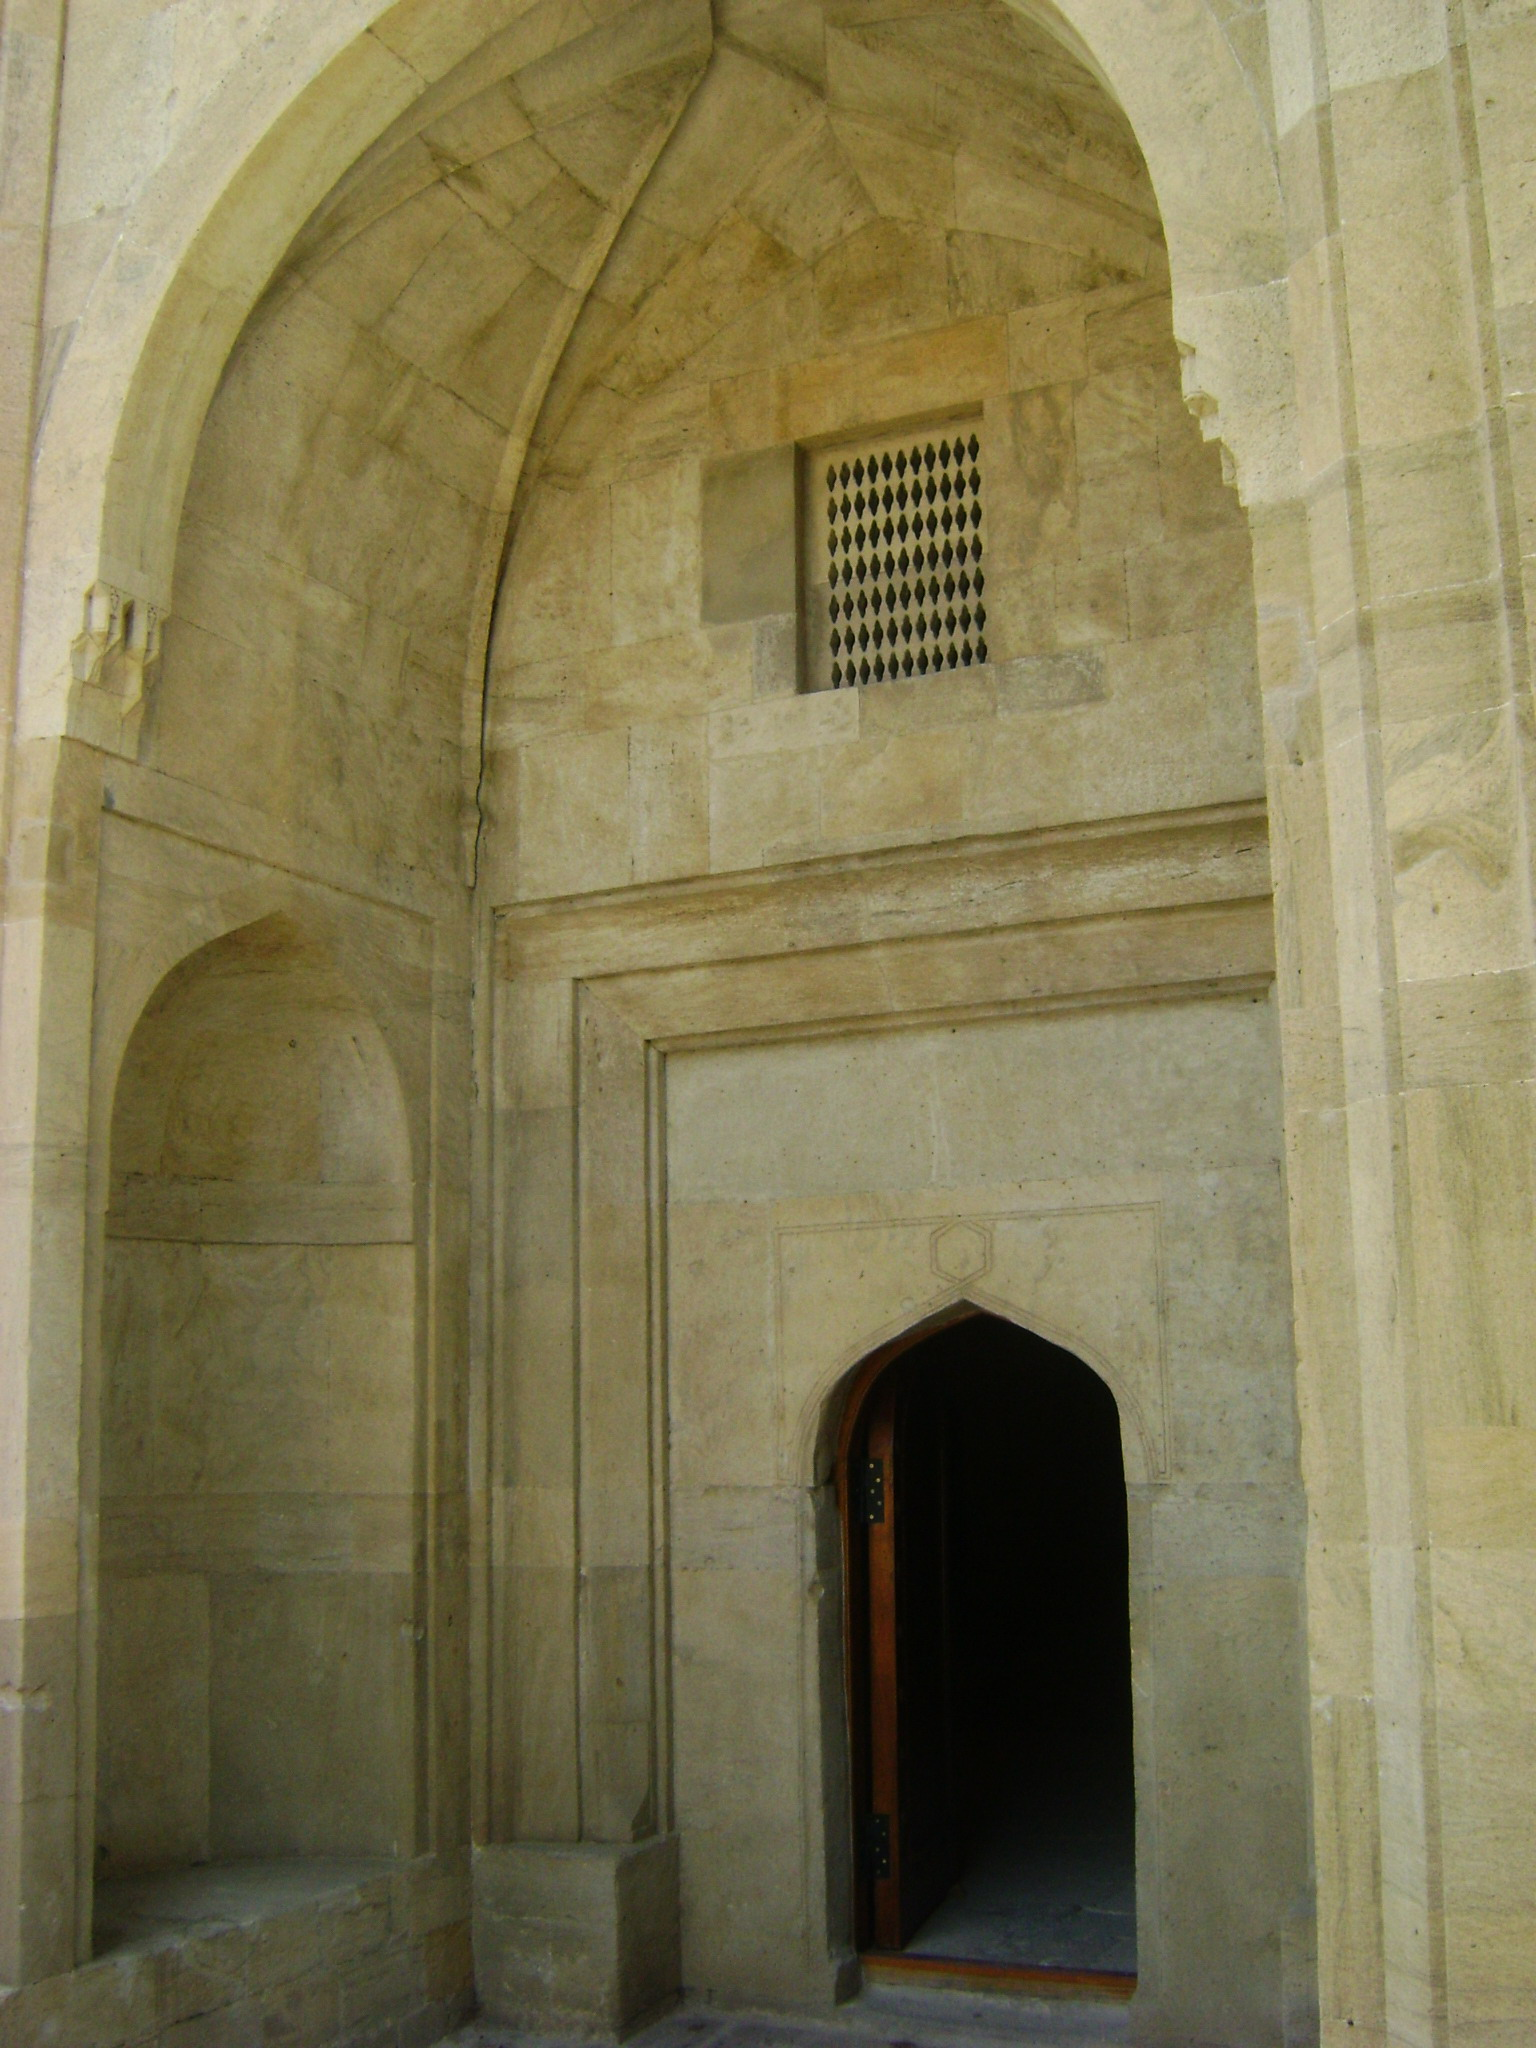 Shahs khans mosque shirvanshahs palace built in 1141 baku azerbaijan2